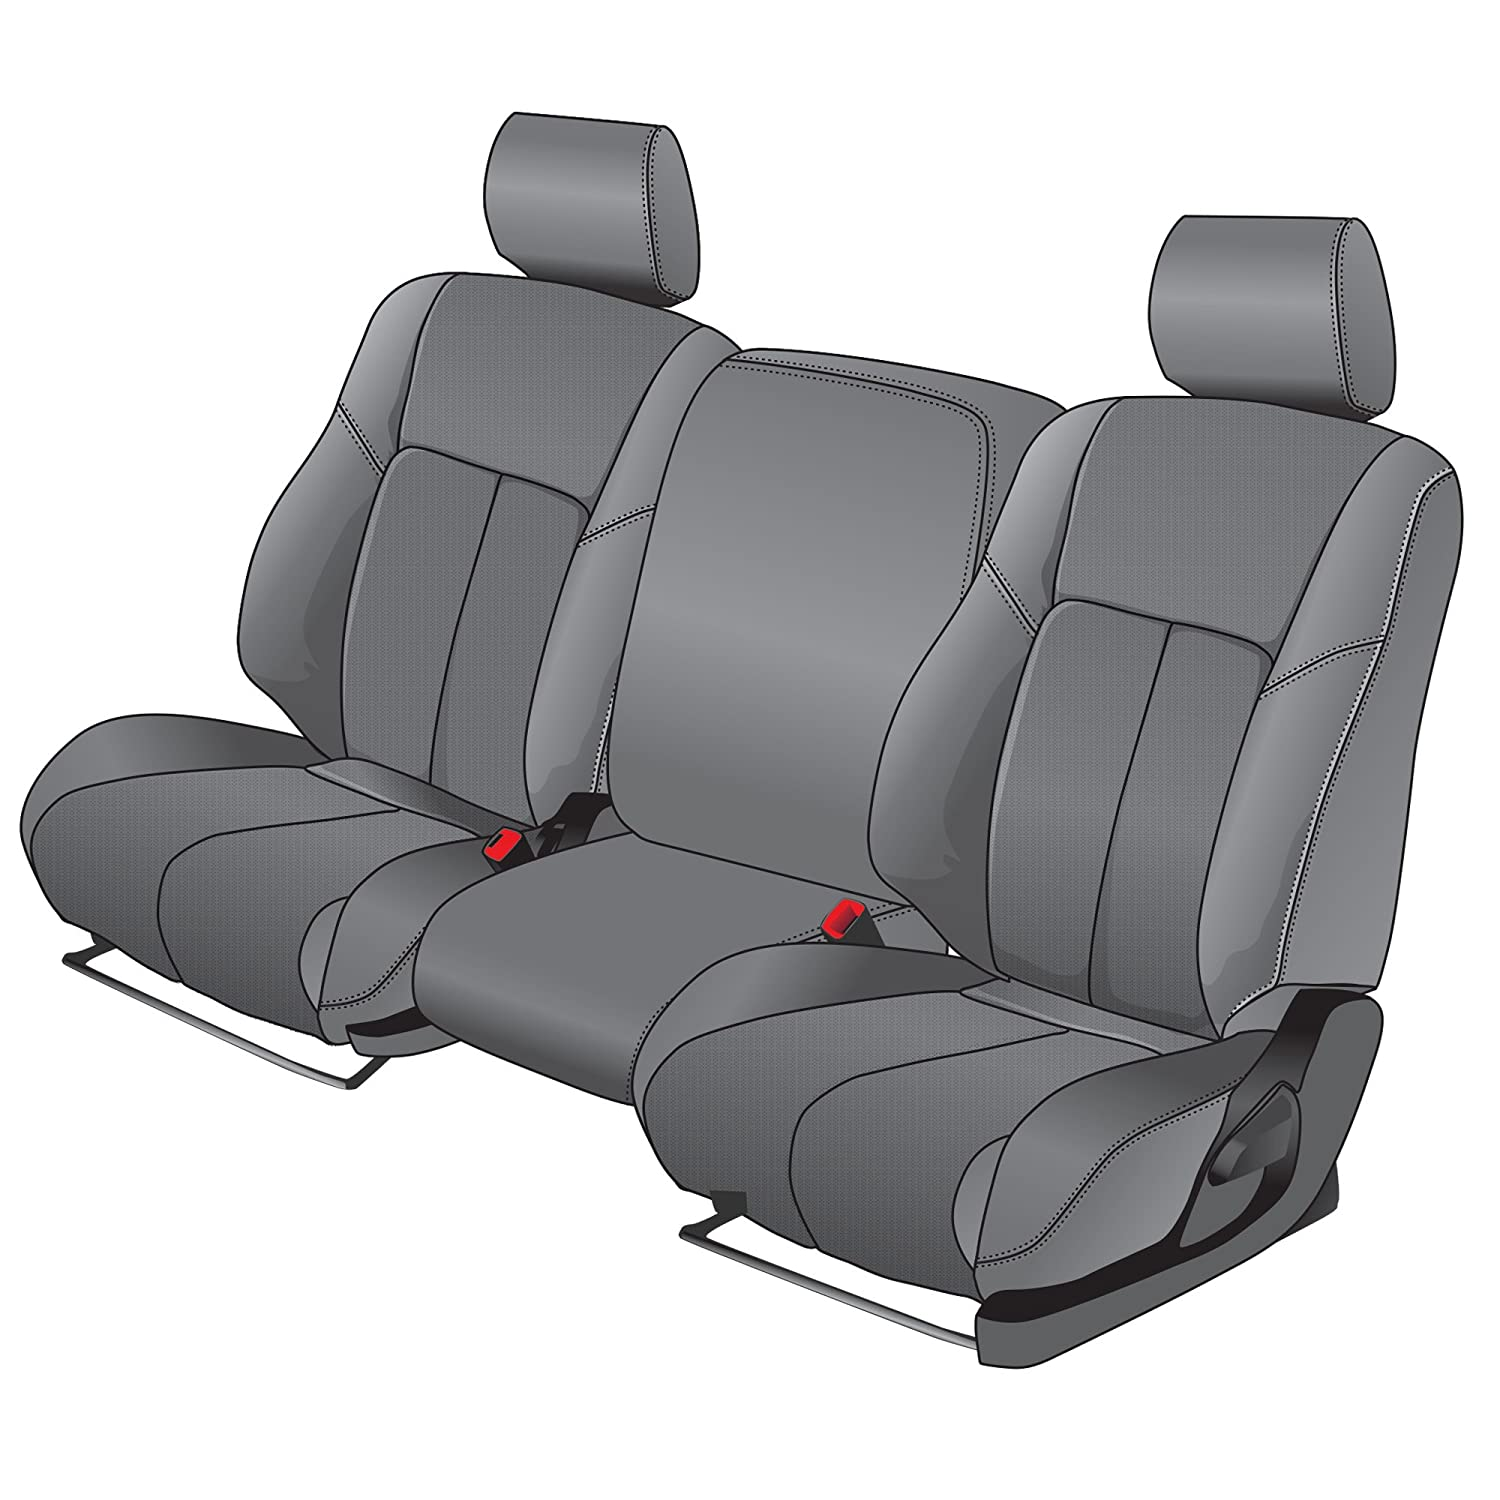 Clazzio 702421gry Grey Leather Front Row Seat Cover for Dodge Ram 2500//3500 Mega Cab